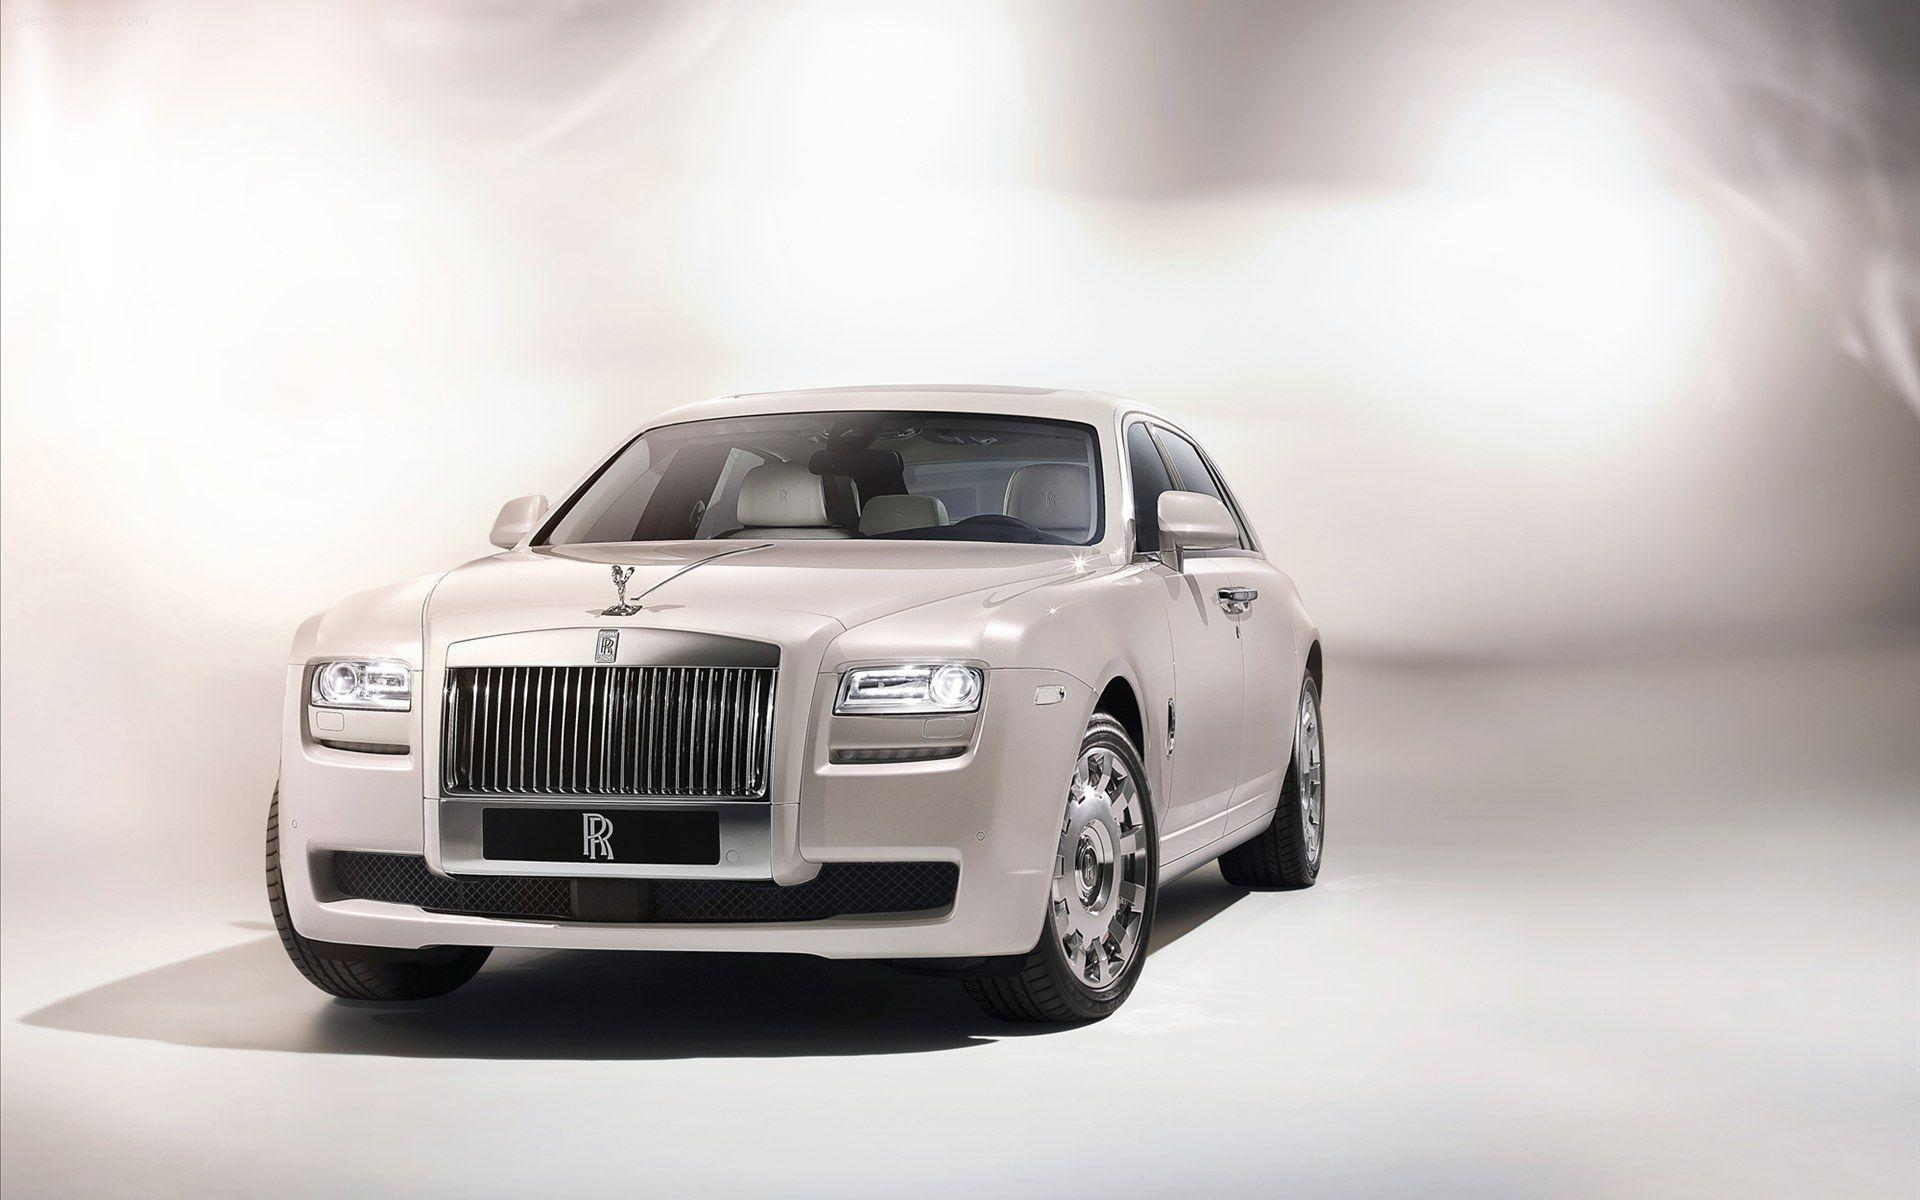 Rolls Royce Ghost Wallpaper HD #6959348